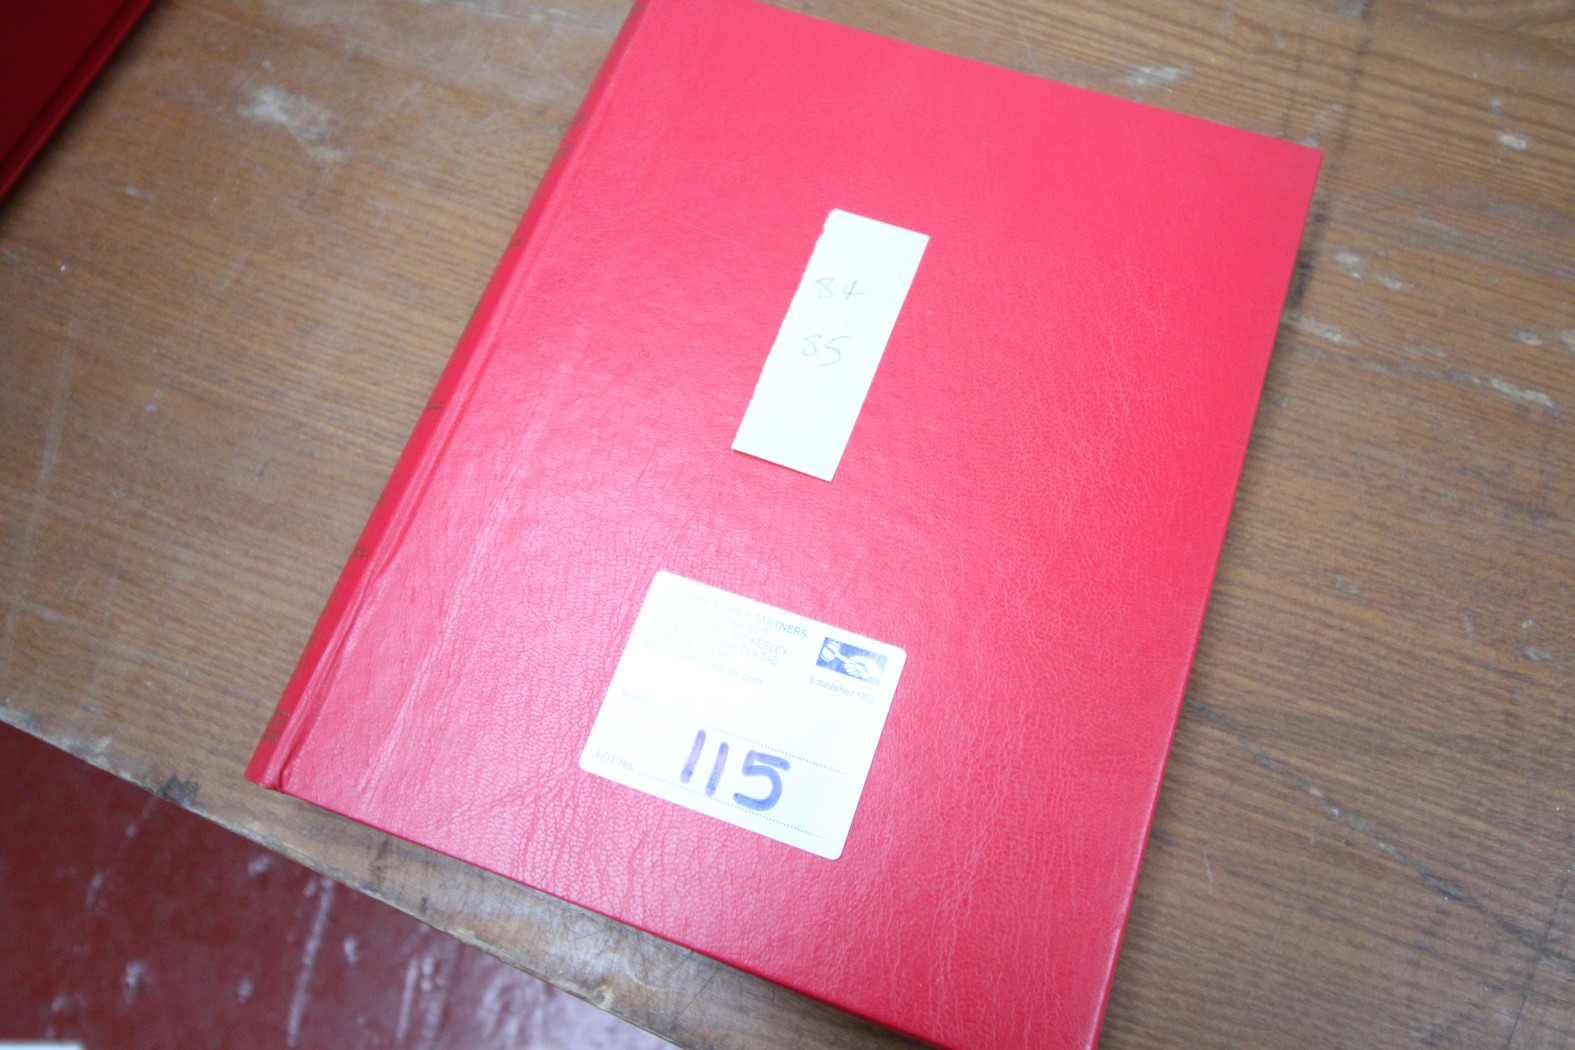 RED BINDER OF MANCHESTER UNITED PROGRAMS 1994 / 95, APPROXIMATELY 25X PLUS PROGRAMS